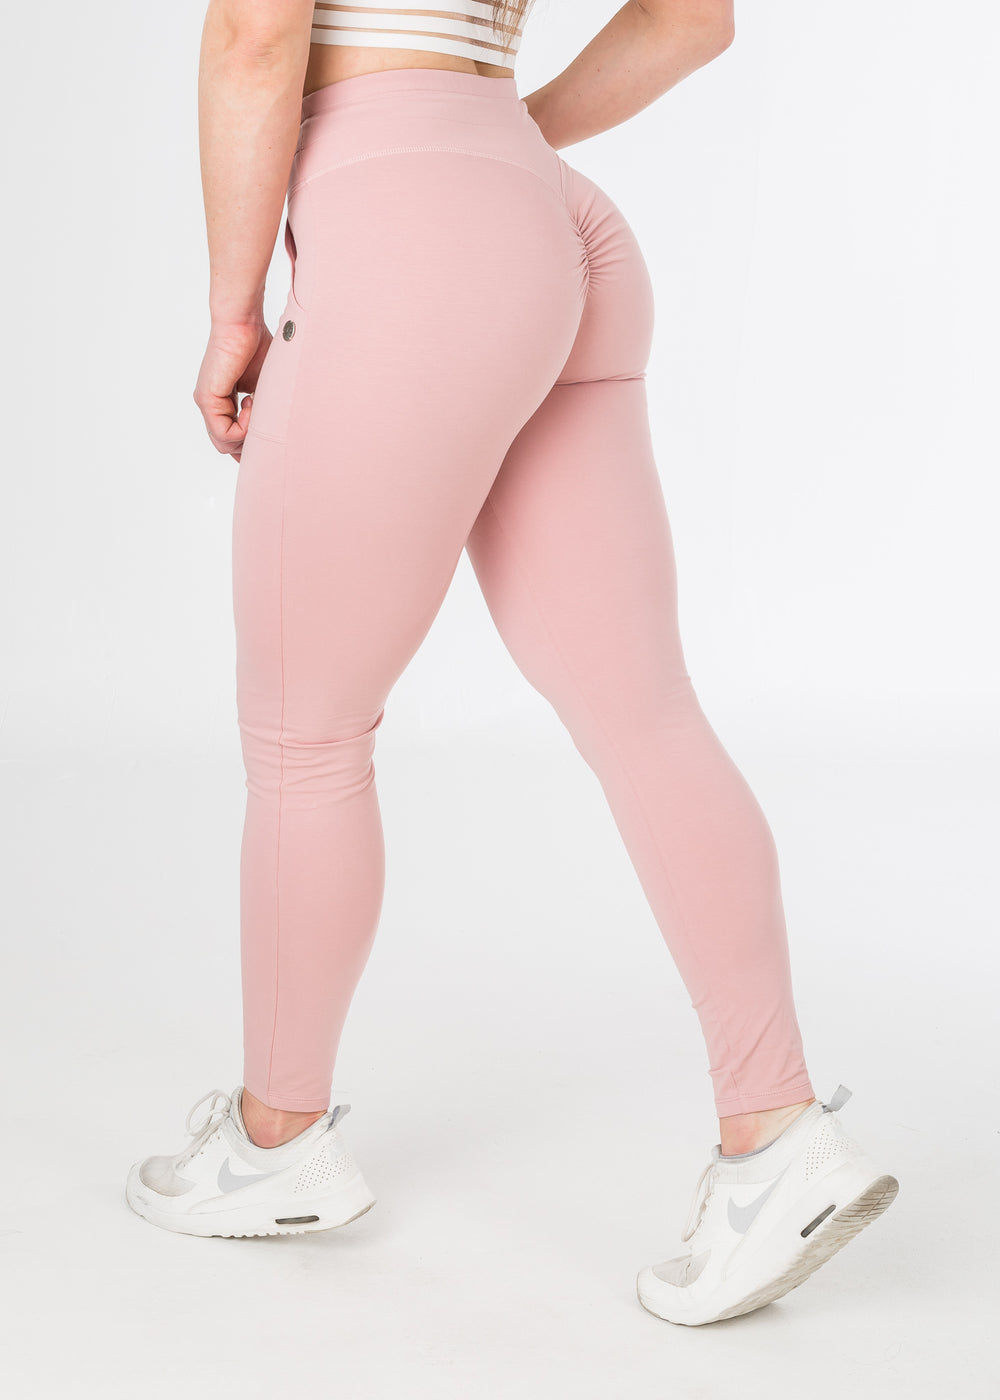 100% squat-proof Plush Pink sexy joggers from CNC.